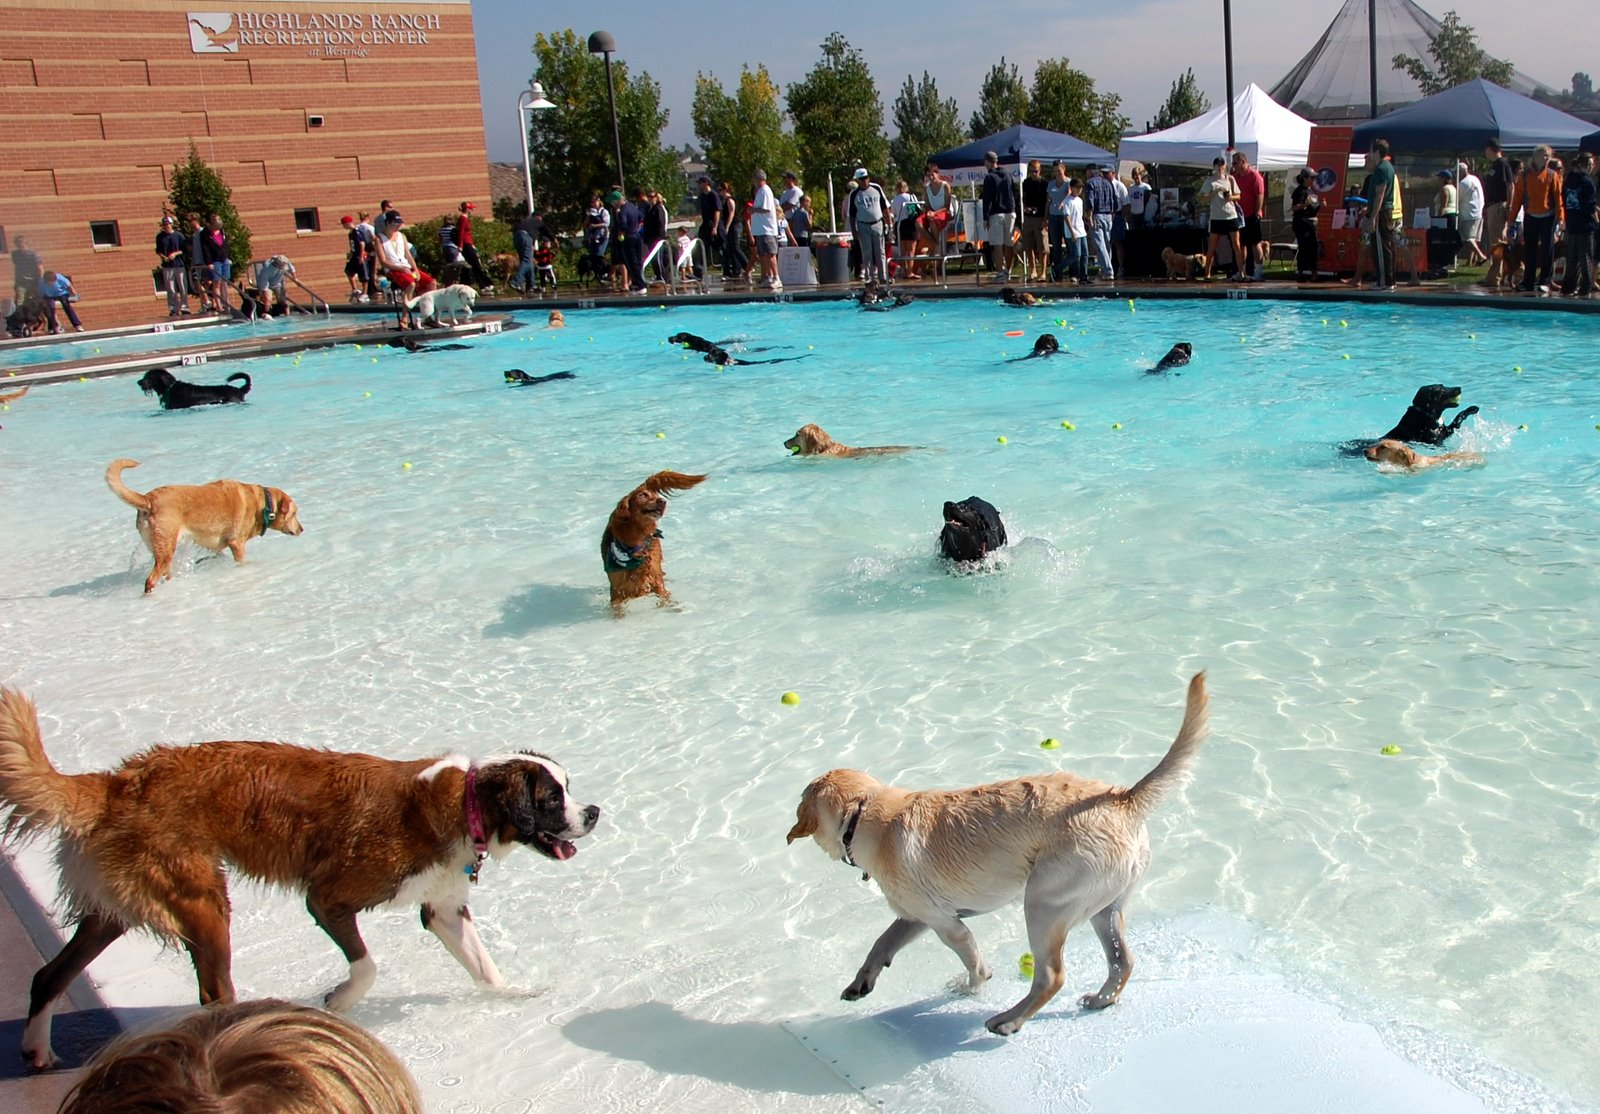 Pool Season Means Pool Safety For Dogs